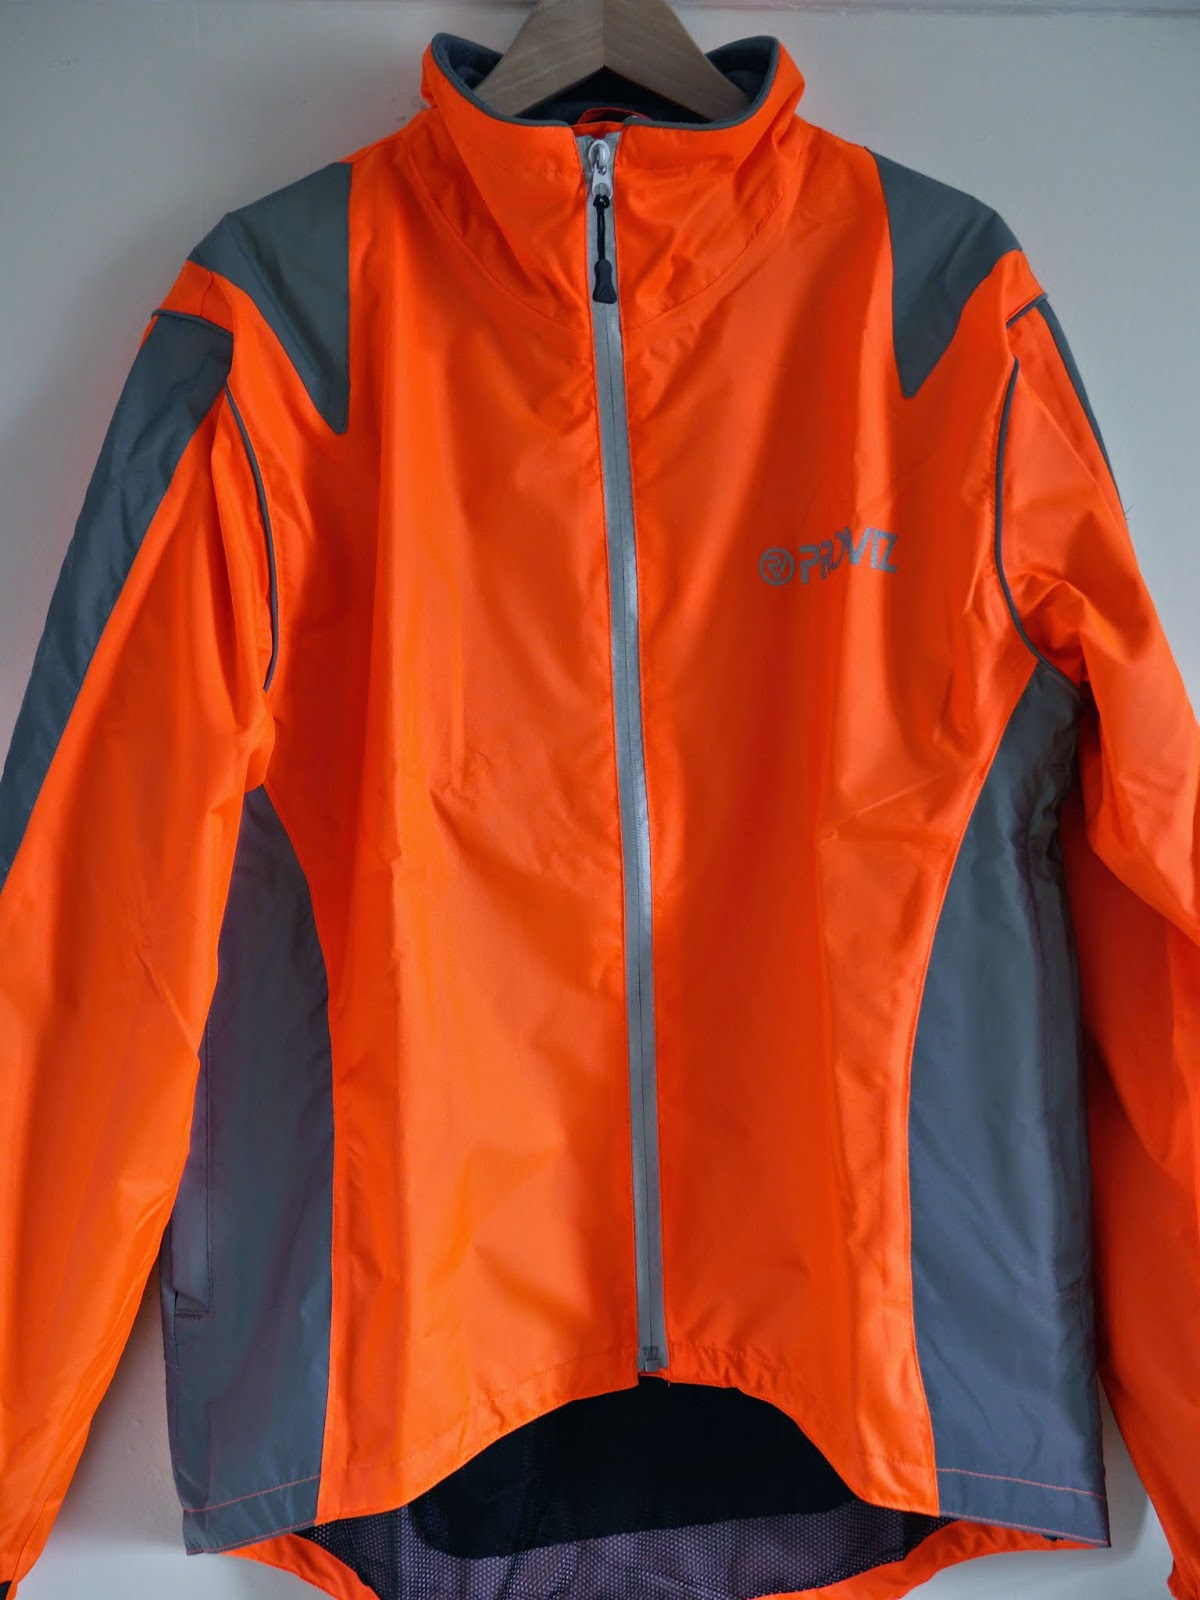 My Orange Brompton: The Best Waterproof Cycling Jacket - EVER!?